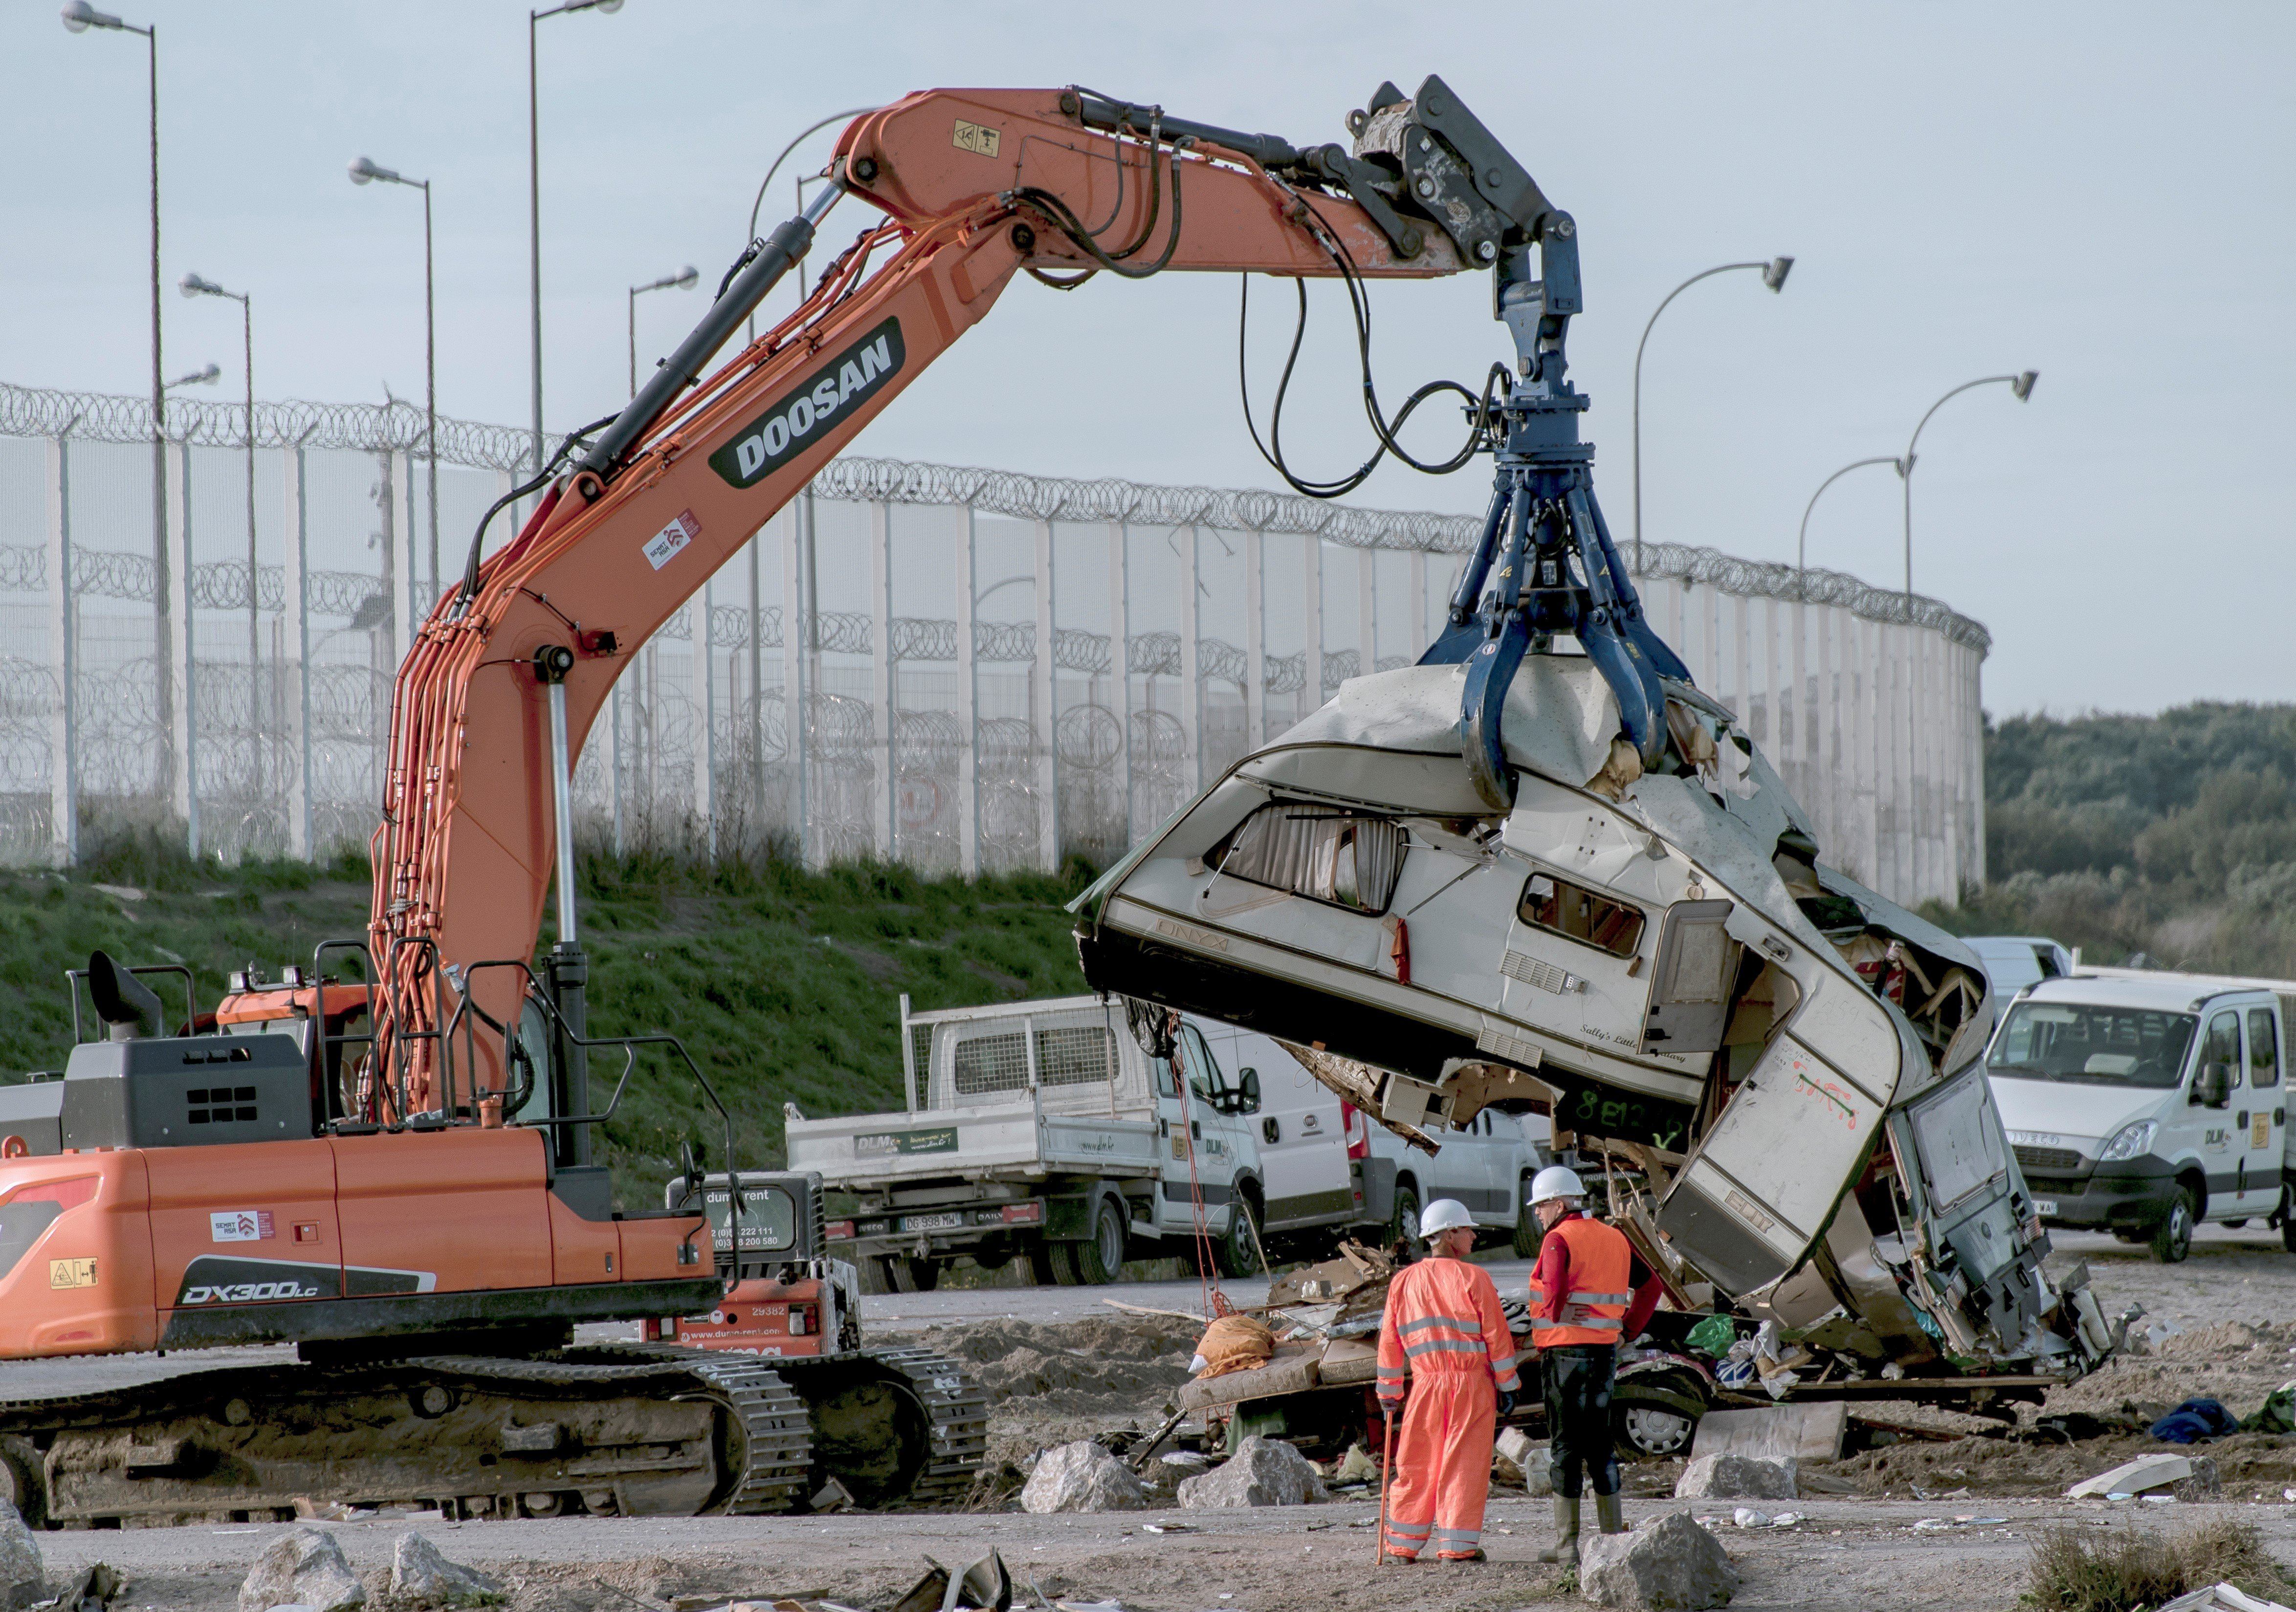 Workers watch as a crane destroys a caravan, once used as a makeshift shelter, at the site of the 'Jungle' migrant camp, on October 31, 2016 in Calais, northern France, as a massive operation to clear the settlement nears completion